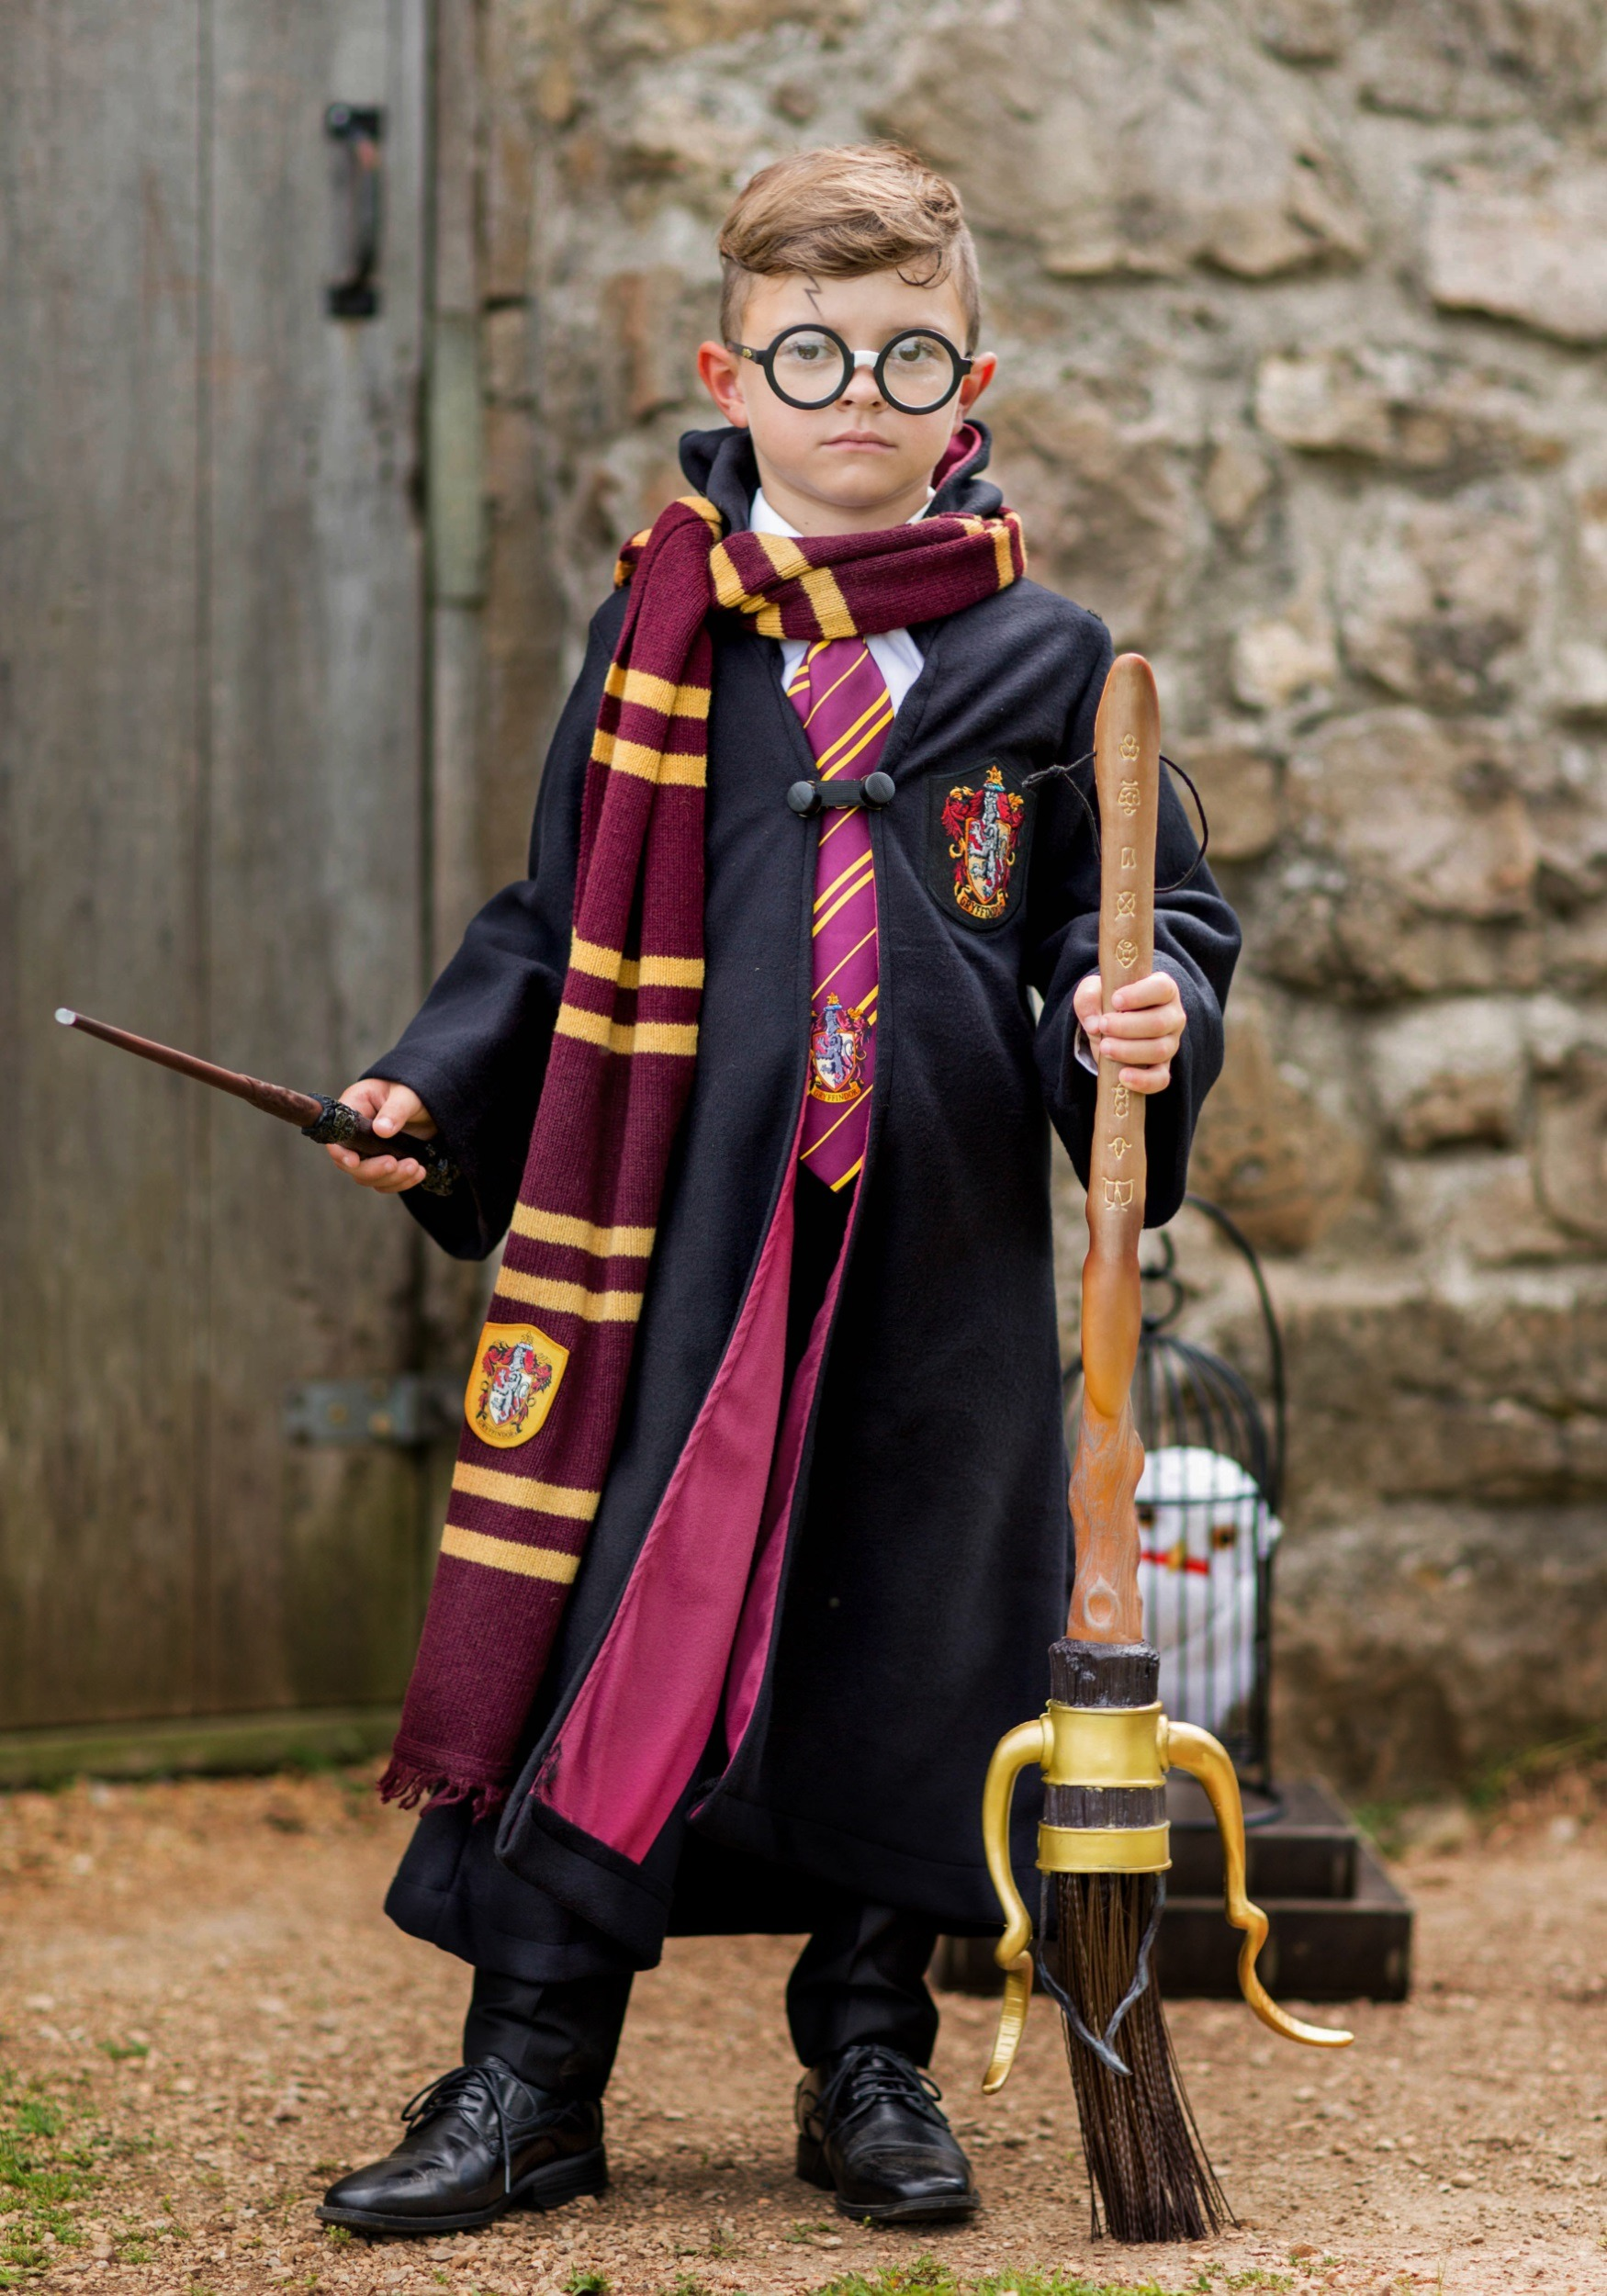 & Child Deluxe Harry Potter Costume